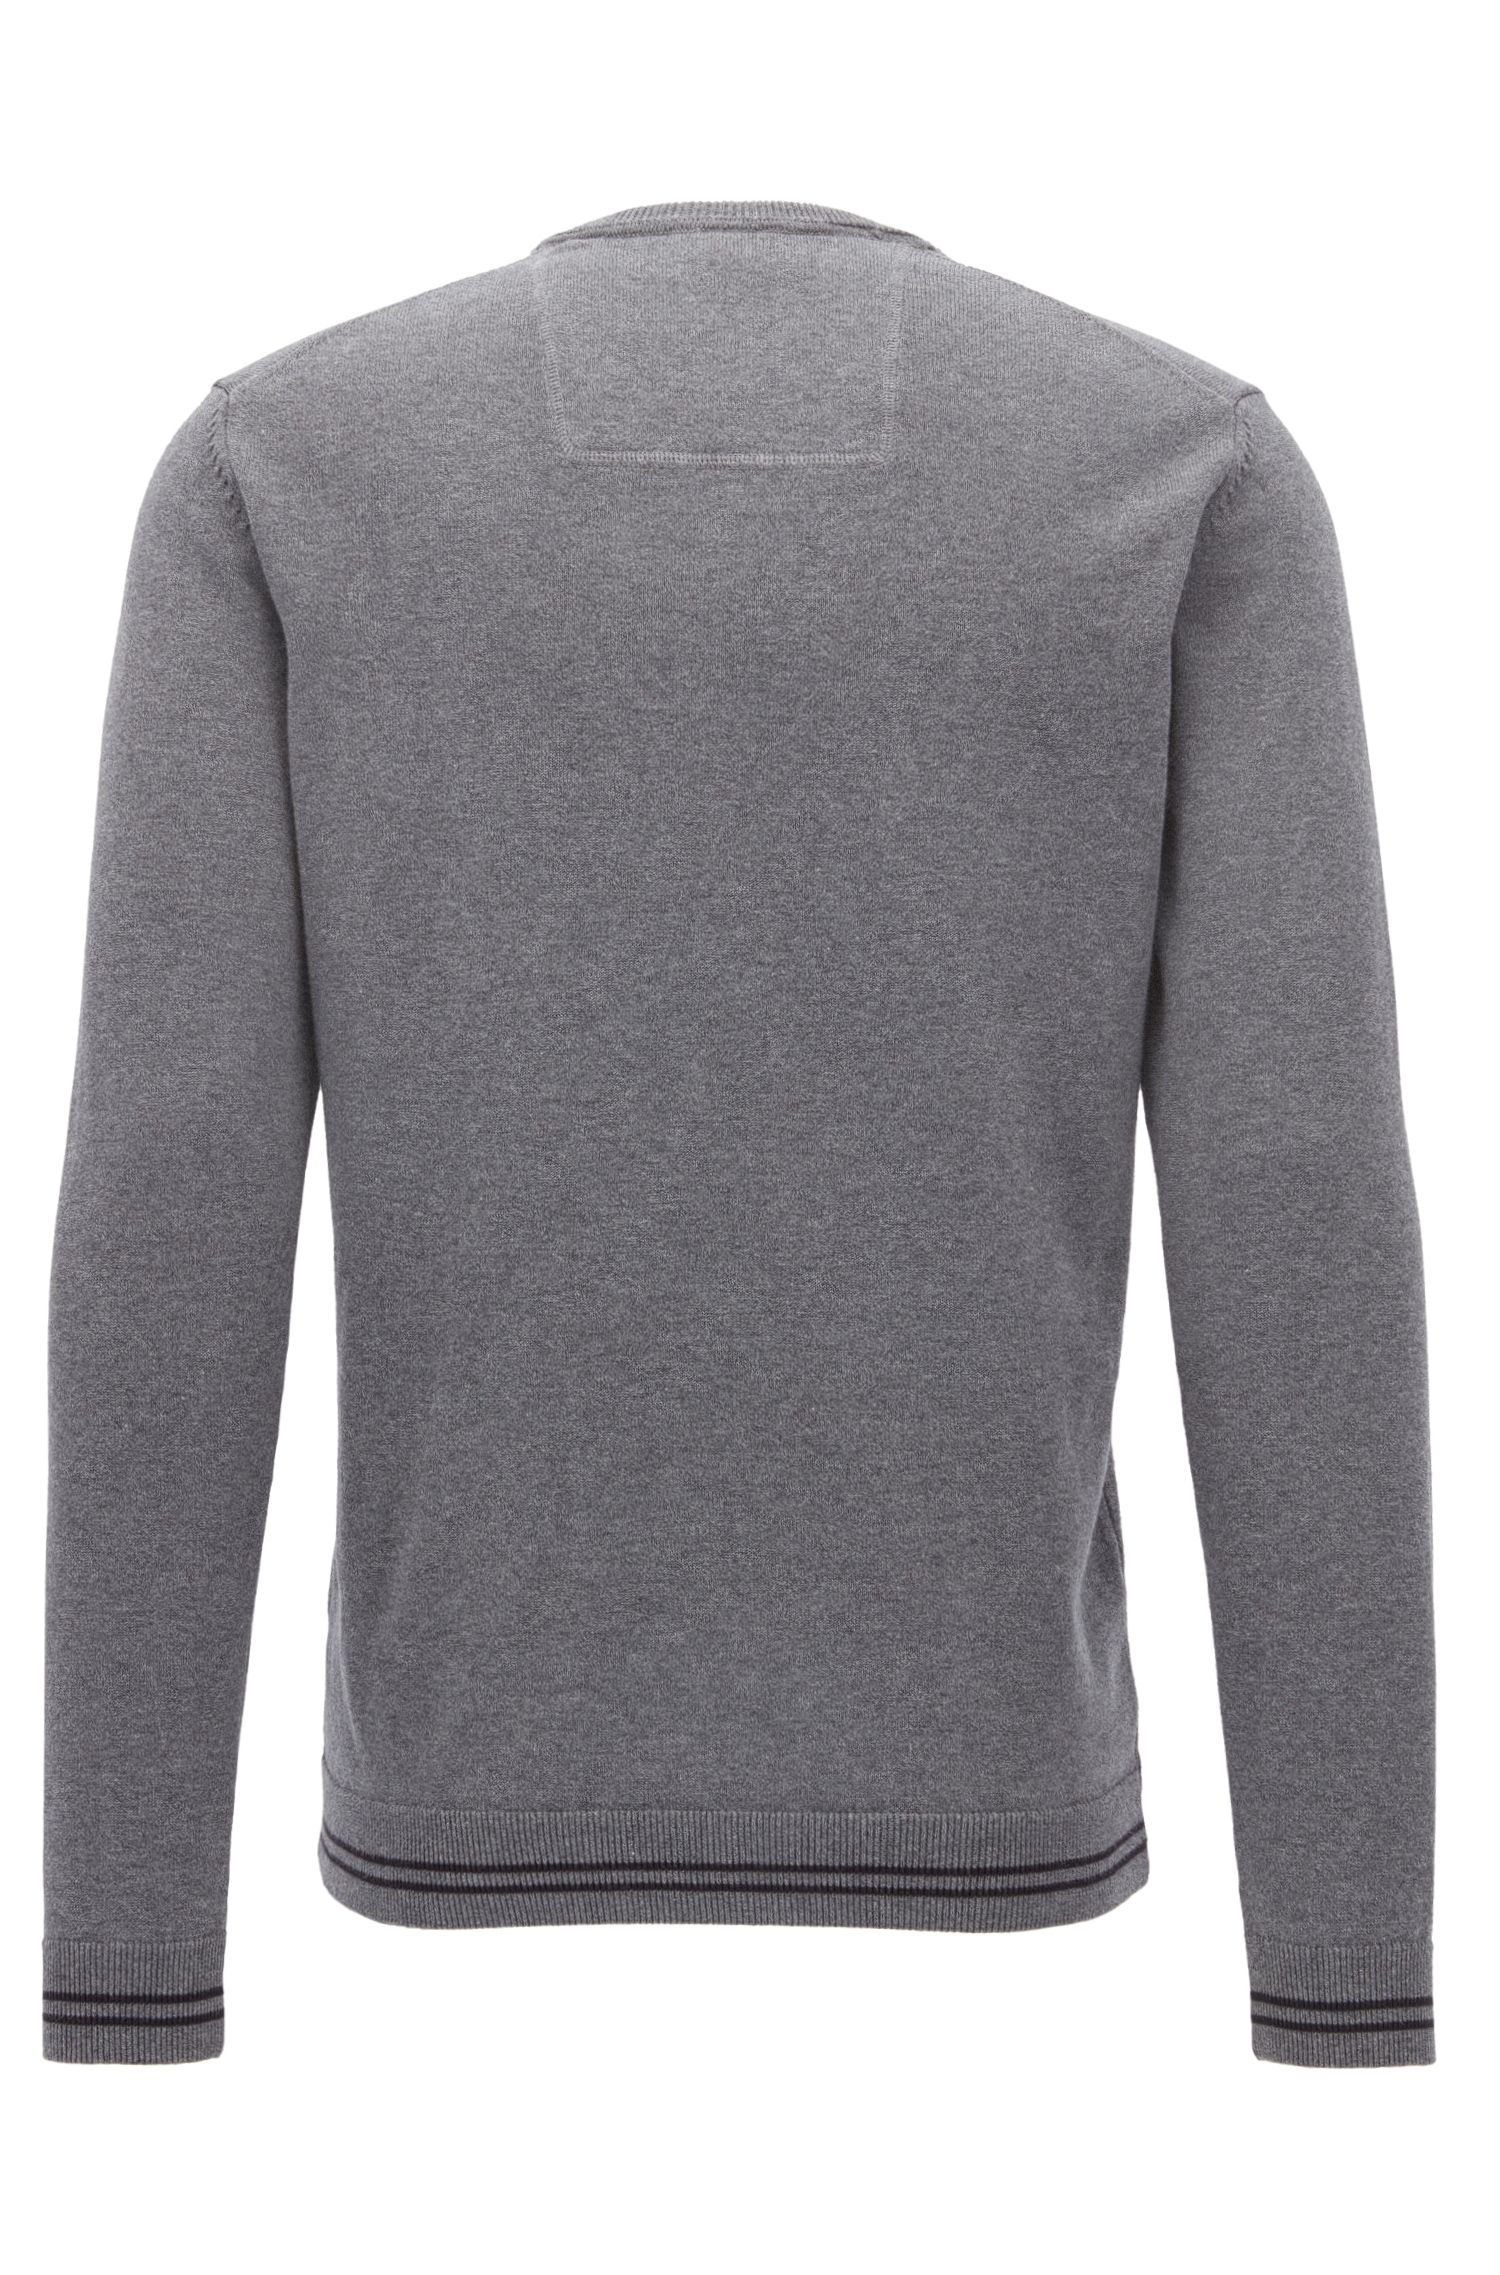 V-neck knitted sweater in a cotton blend